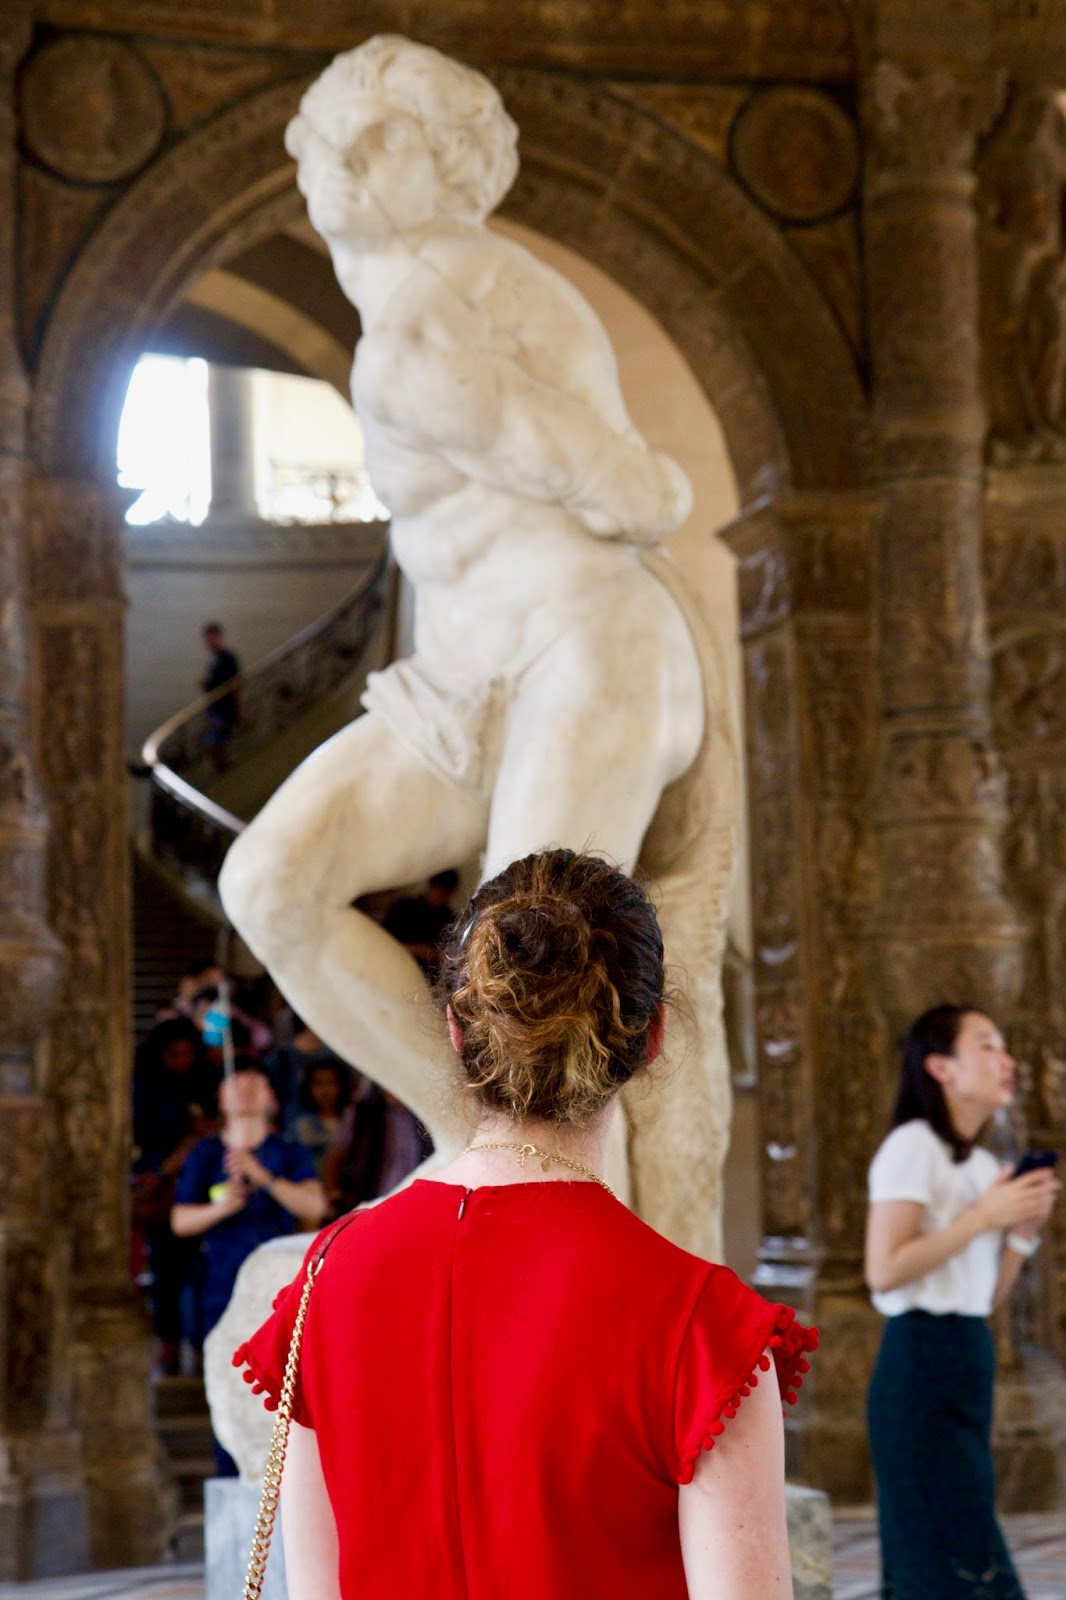 Fashion blogger Kathleen Harper at the Louvre in Paris France